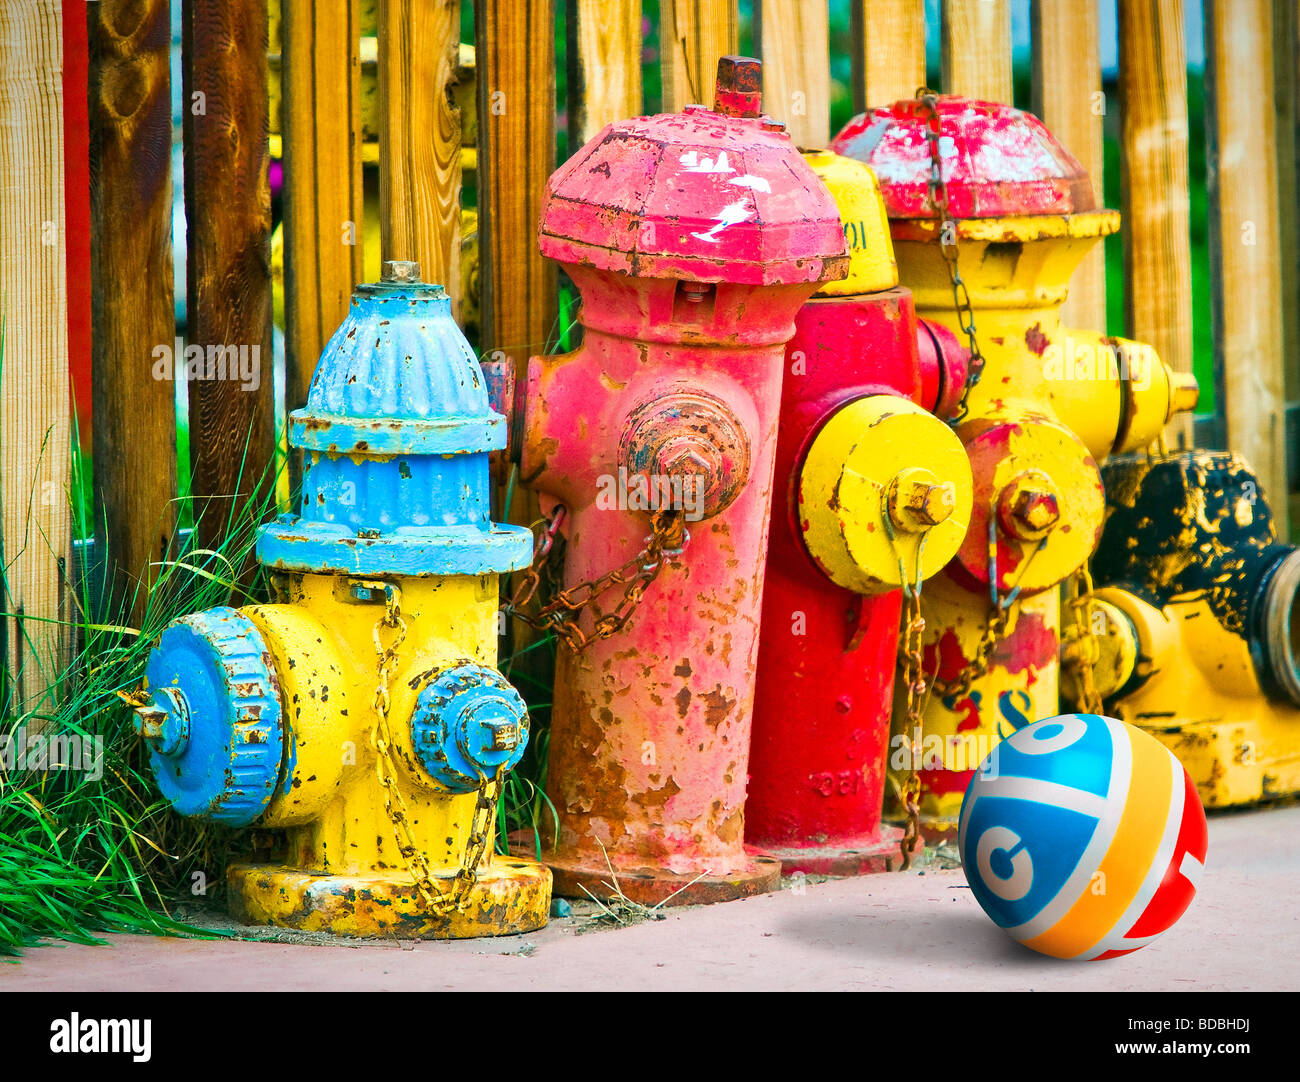 Colorful old fire hydrants painted in bright colors, sitting on sidewalk against wood fence and child's rubber - Stock Image